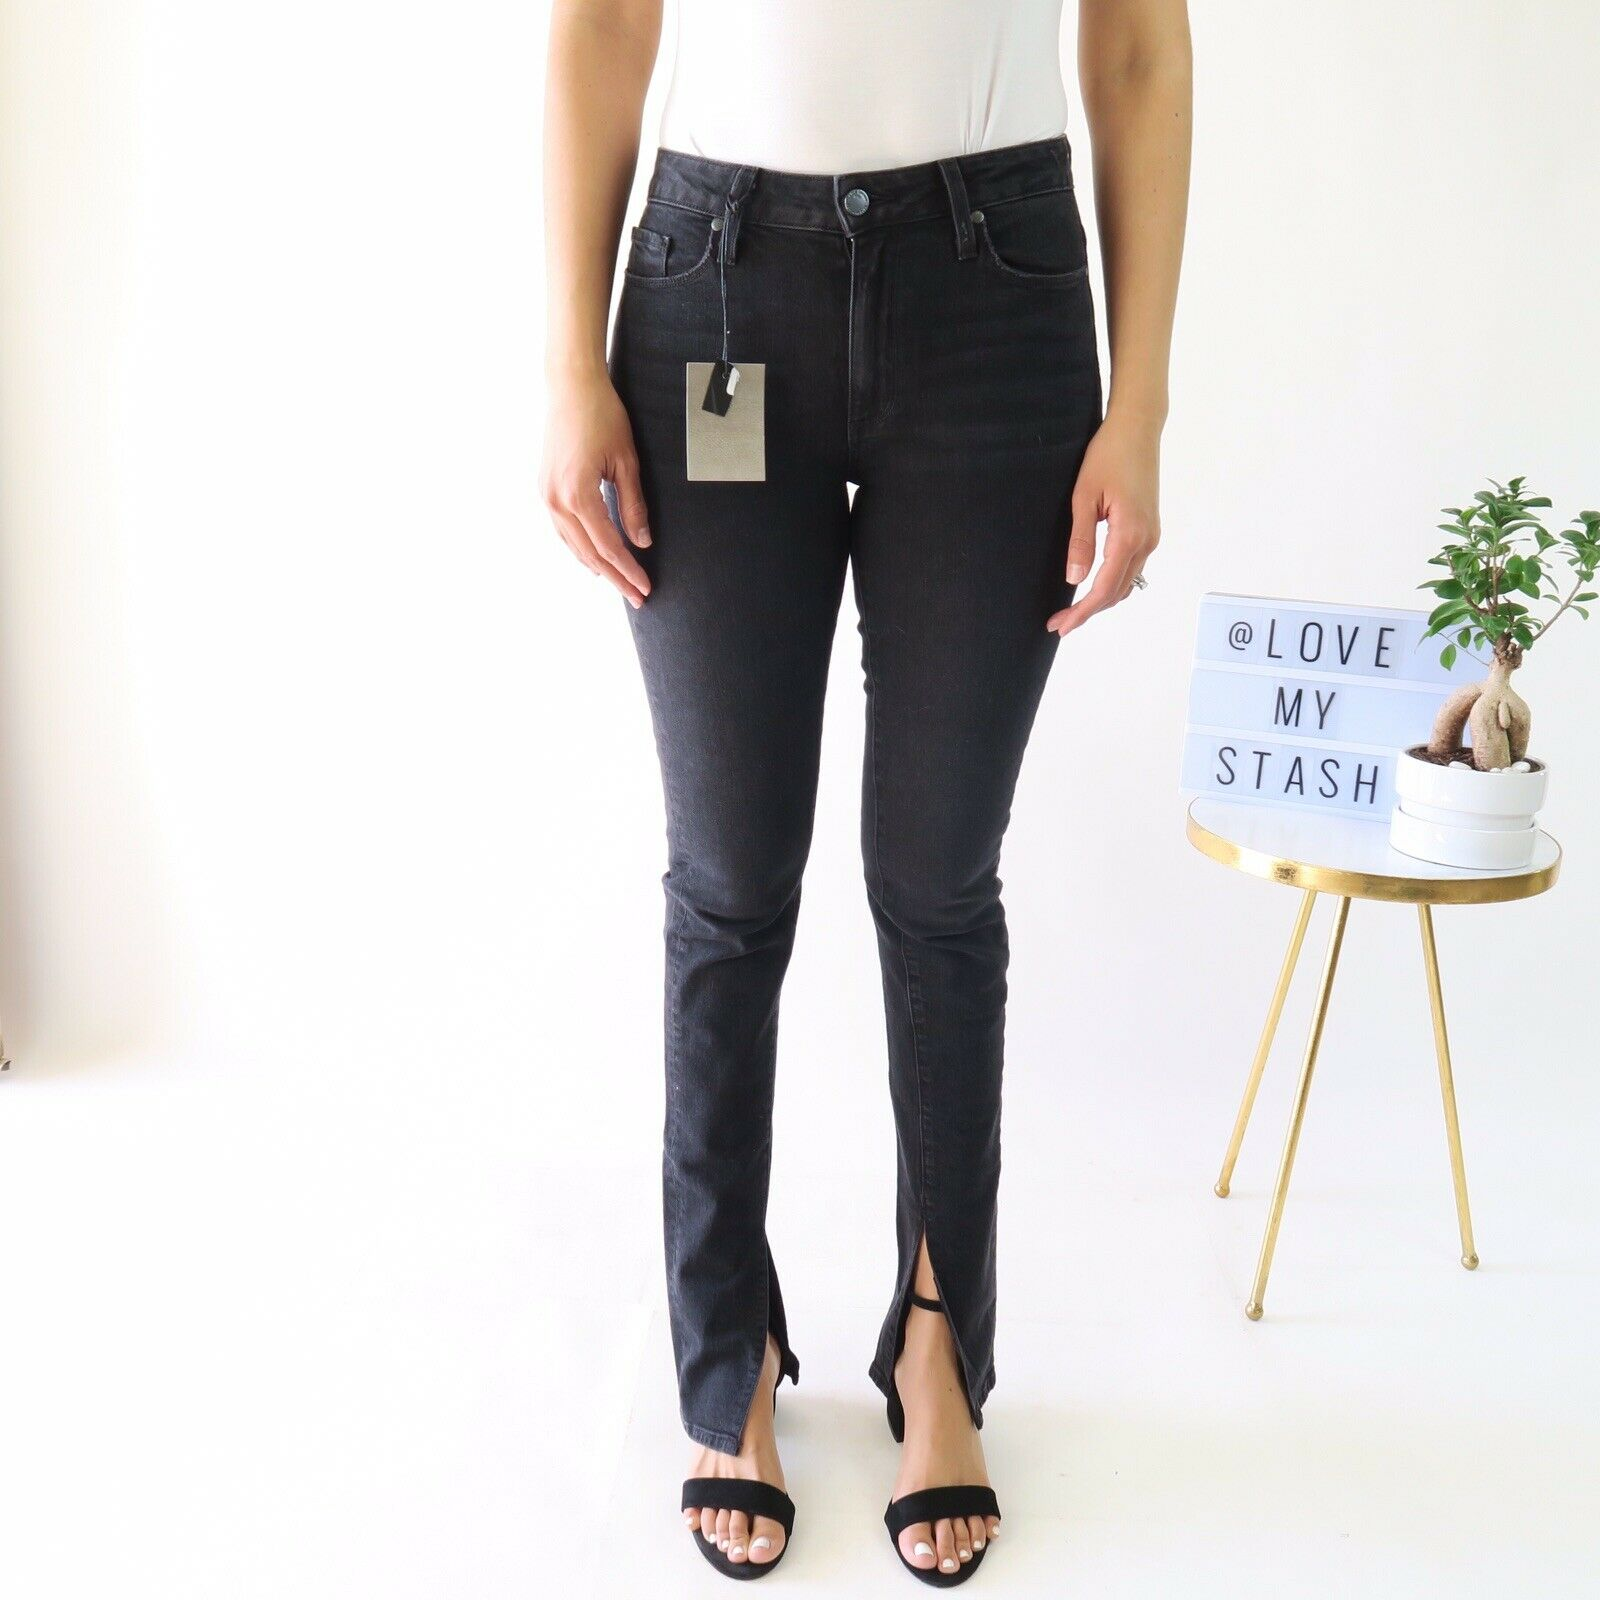 PAIGE x Rosie HW Constance Skinny Jeans In Vintage black - Women's Size 27 - NWT